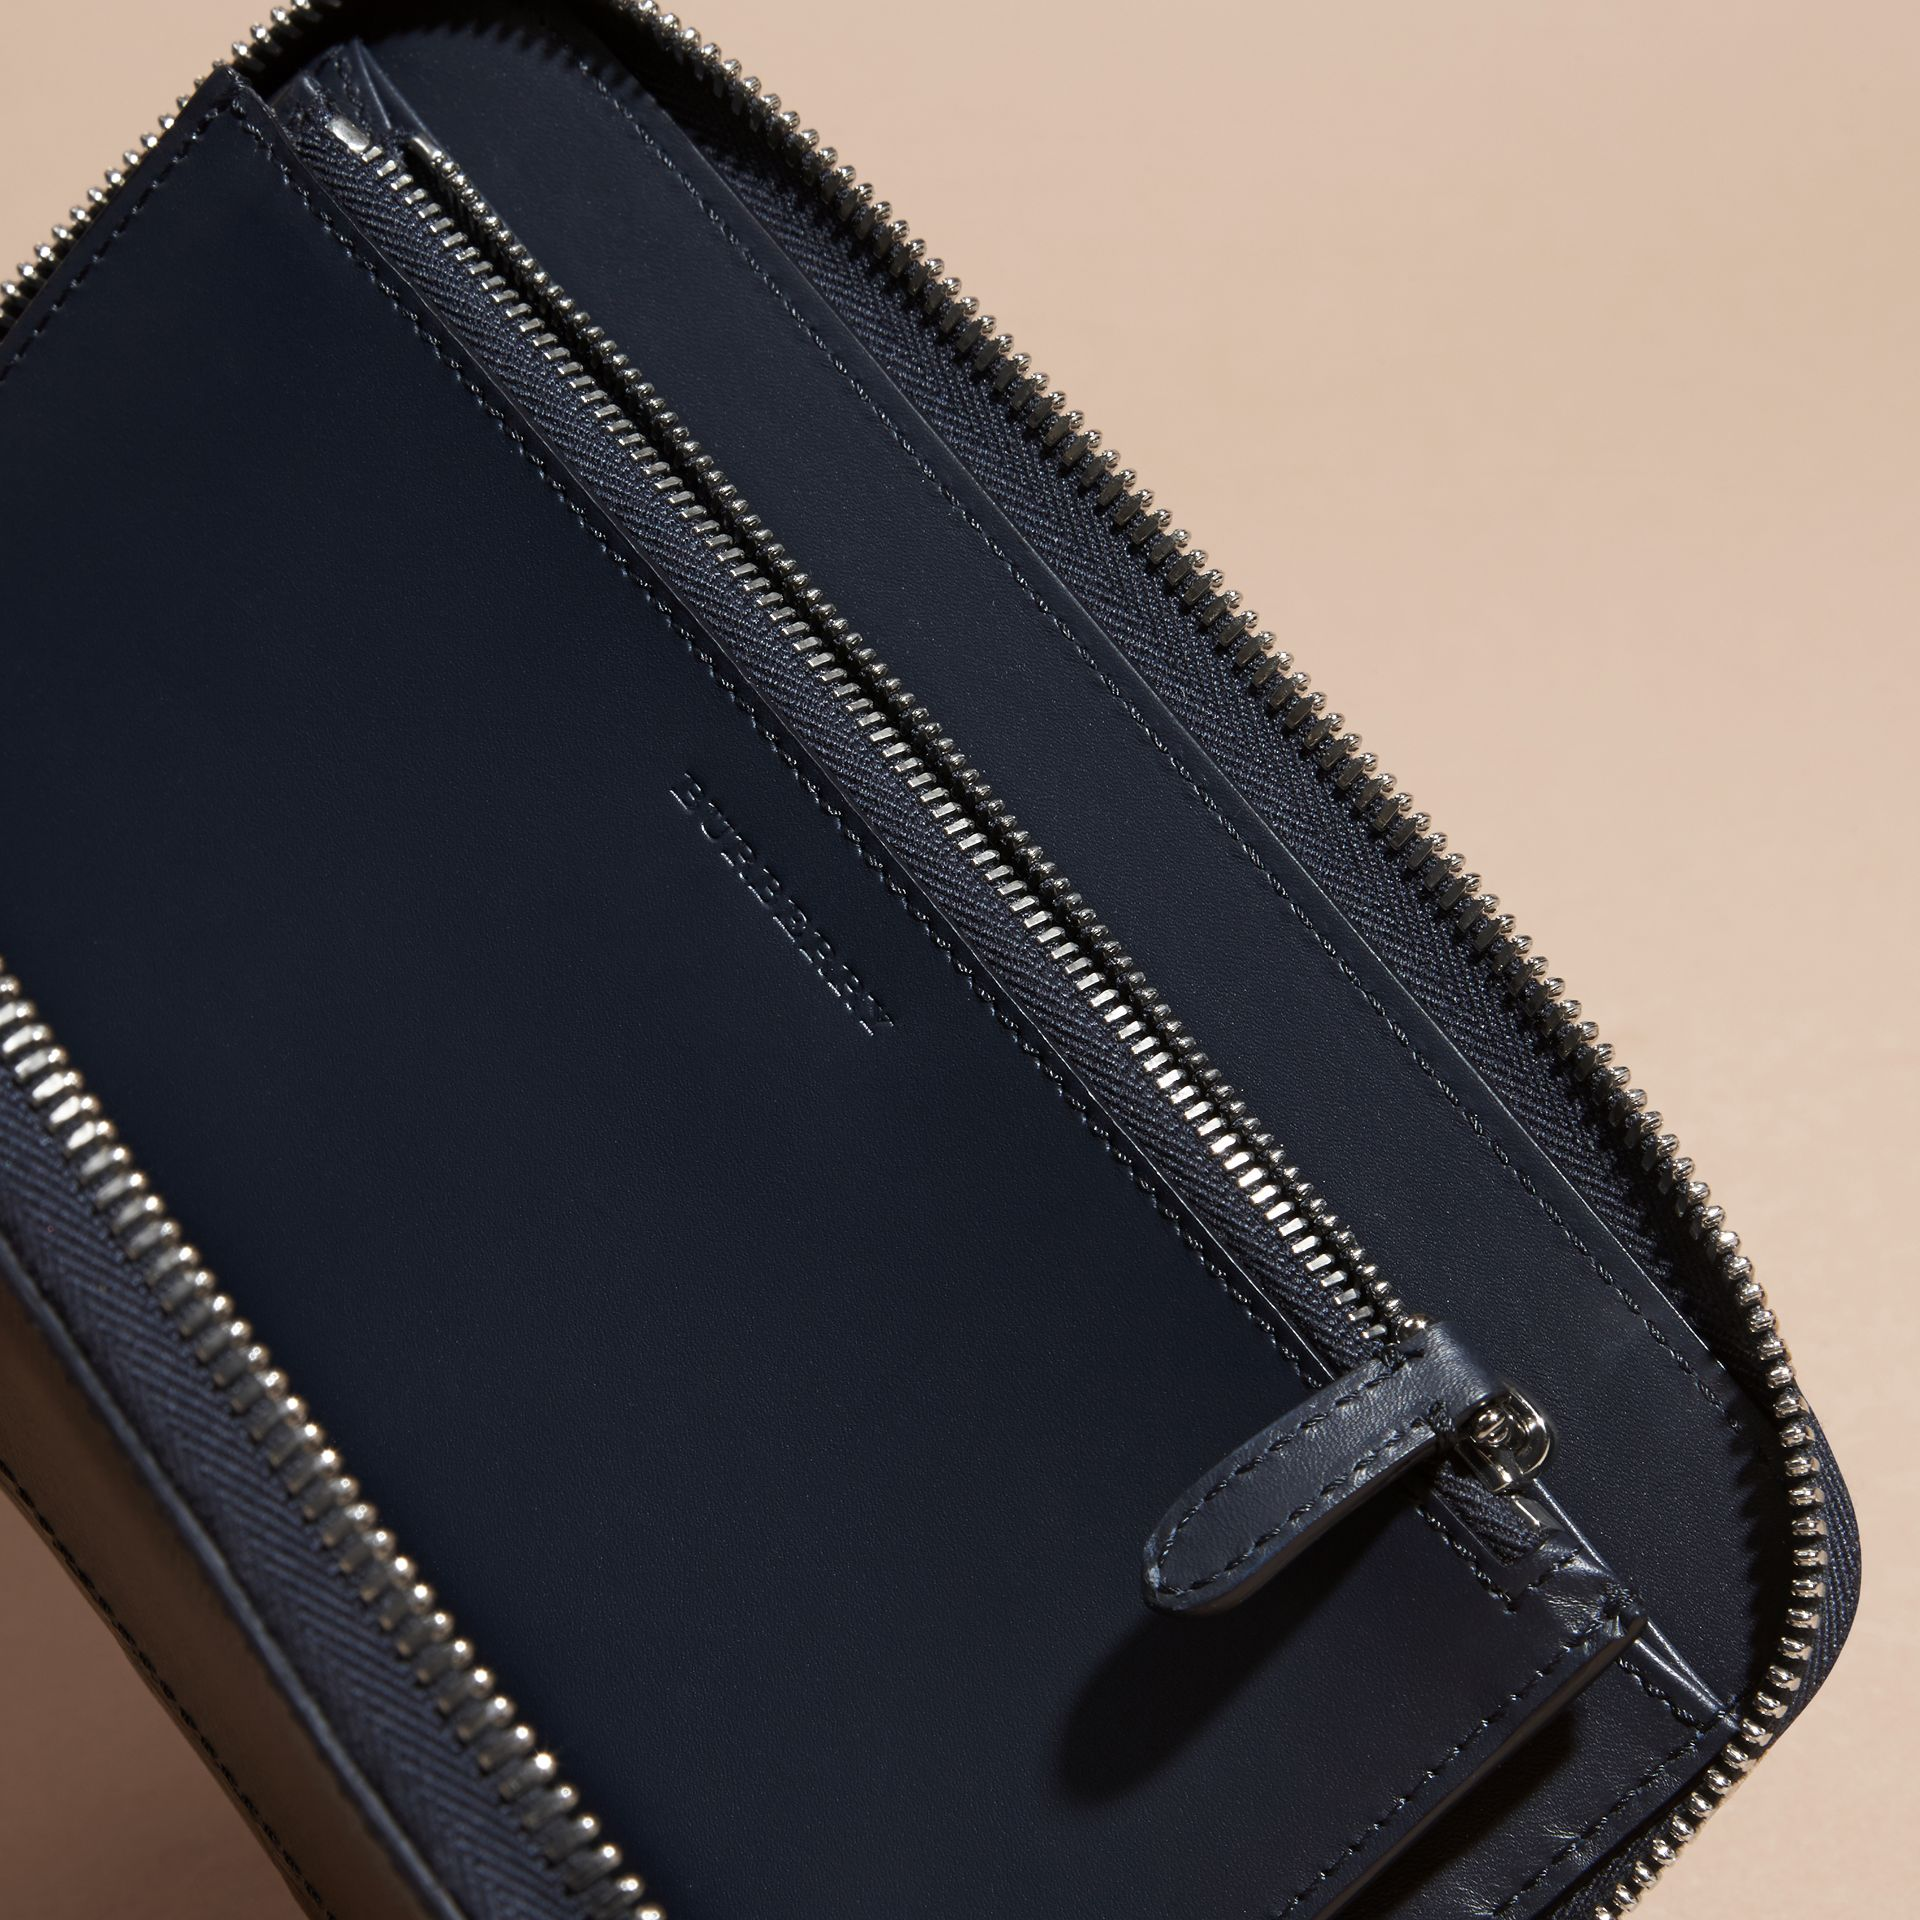 London Leather and Alligator Ziparound Wallet in Dark Navy - Men | Burberry Australia - gallery image 4